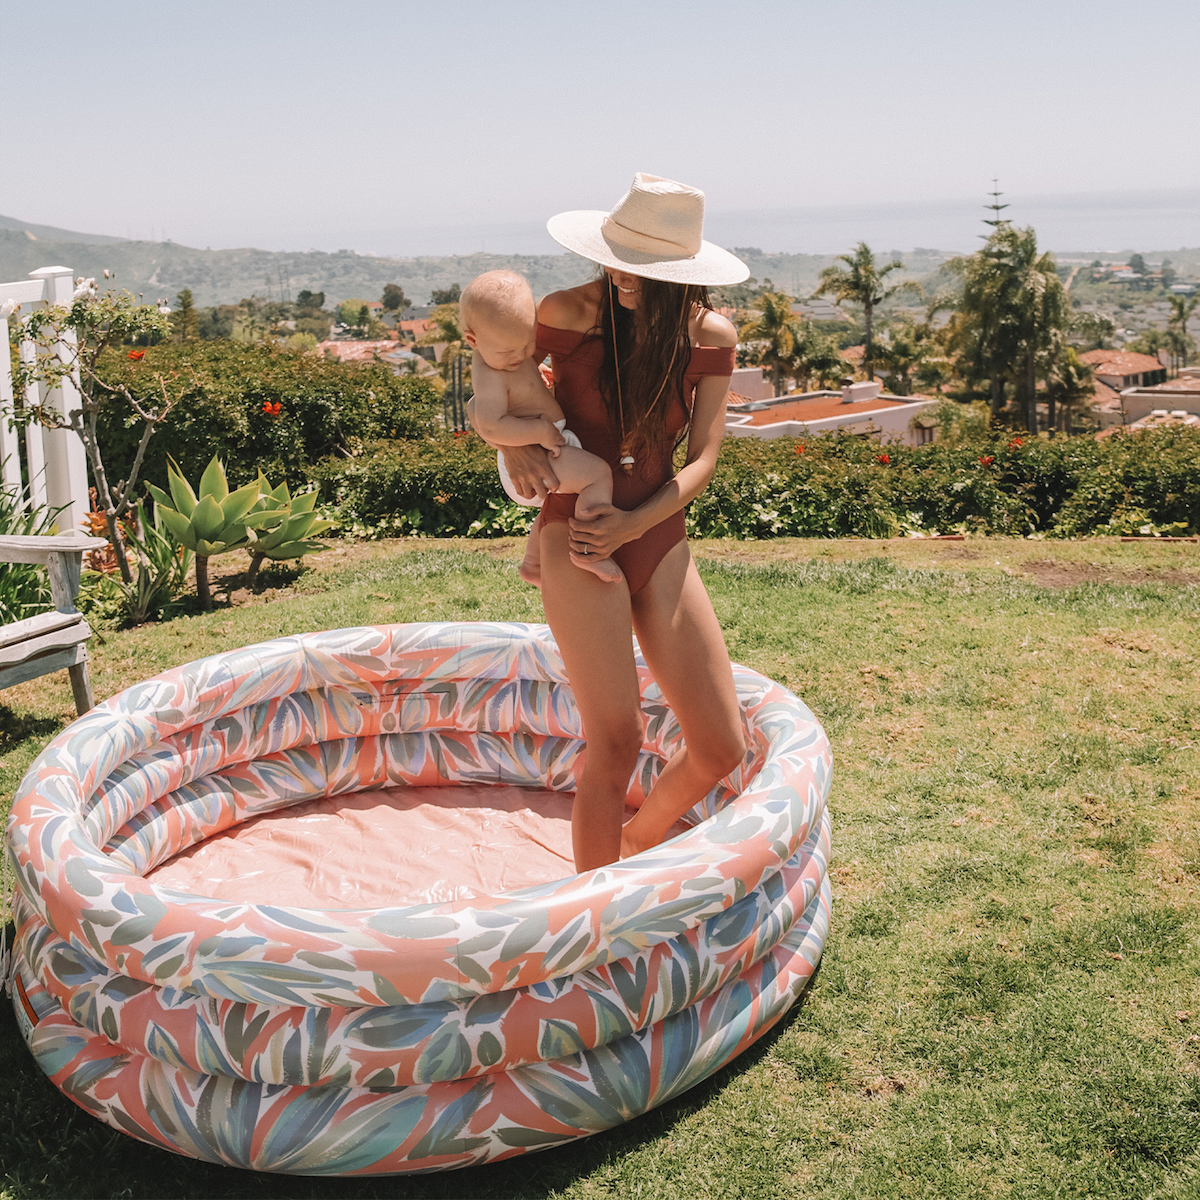 a mom and her baby standing in the pool which has a floral pattern